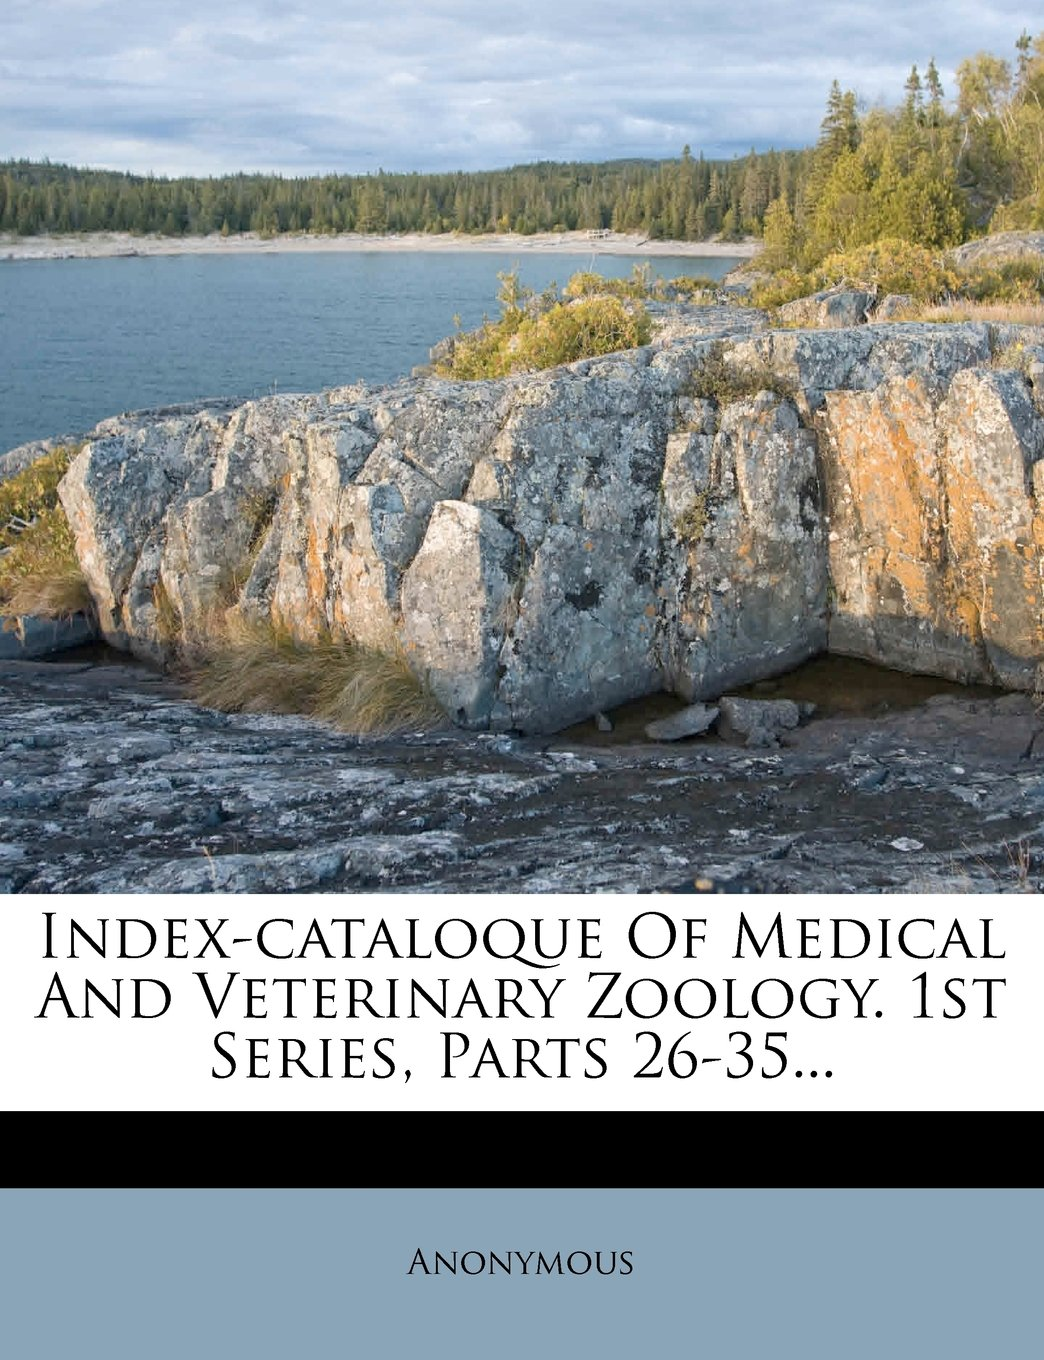 Index-Cataloque of Medical and Veterinary Zoology. 1st Series, Parts 26-35... pdf